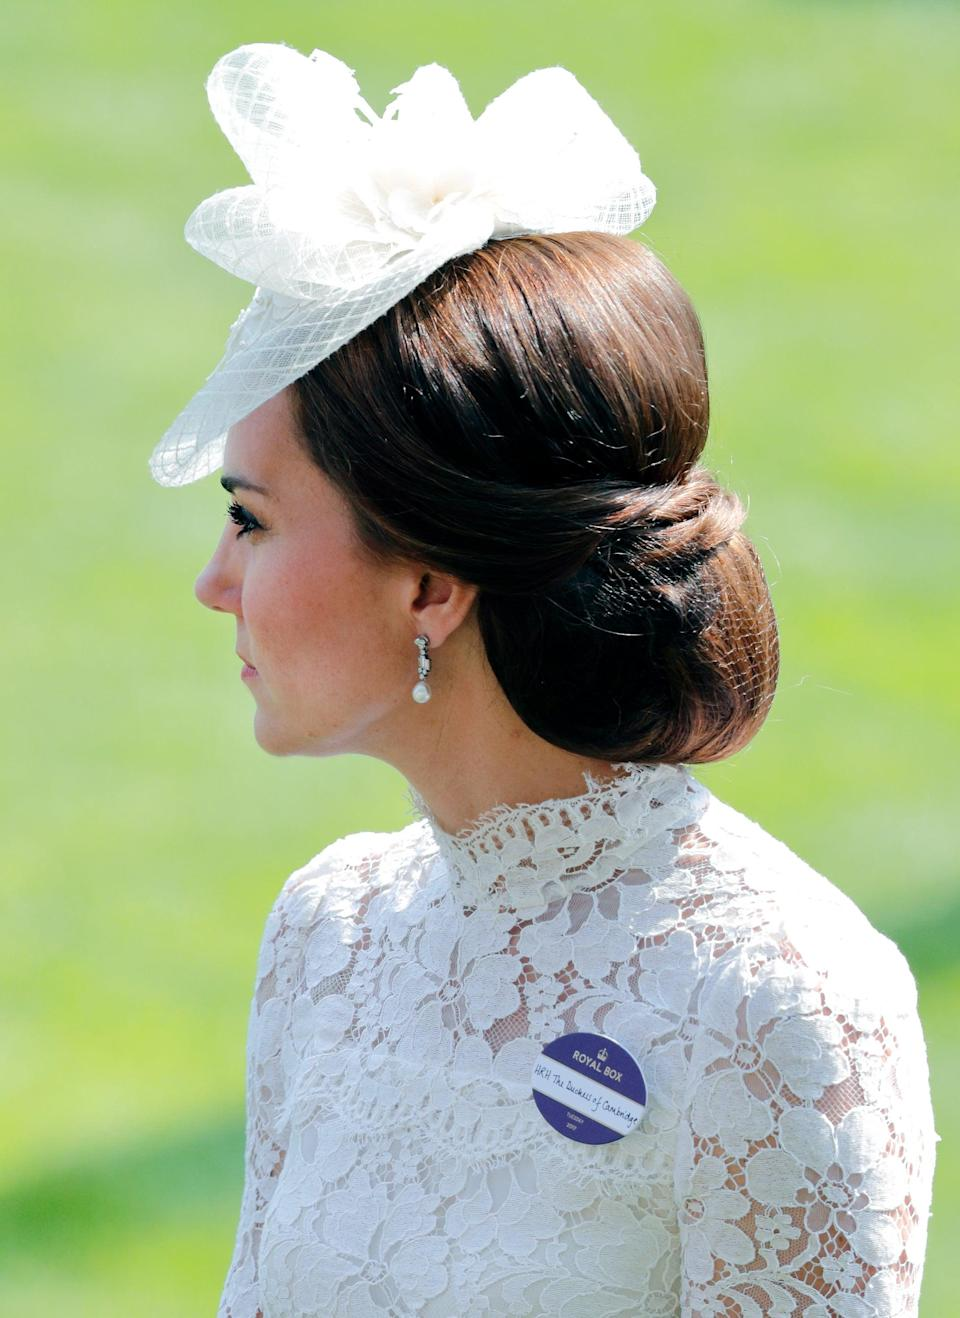 <p>Thanks to her handy hairnet, not a single hair was out of place in this looped-up chignon (with cross-cross details at the back, of course). It was the perfect style for a warm day at the Royal Ascot races in 2017. </p>